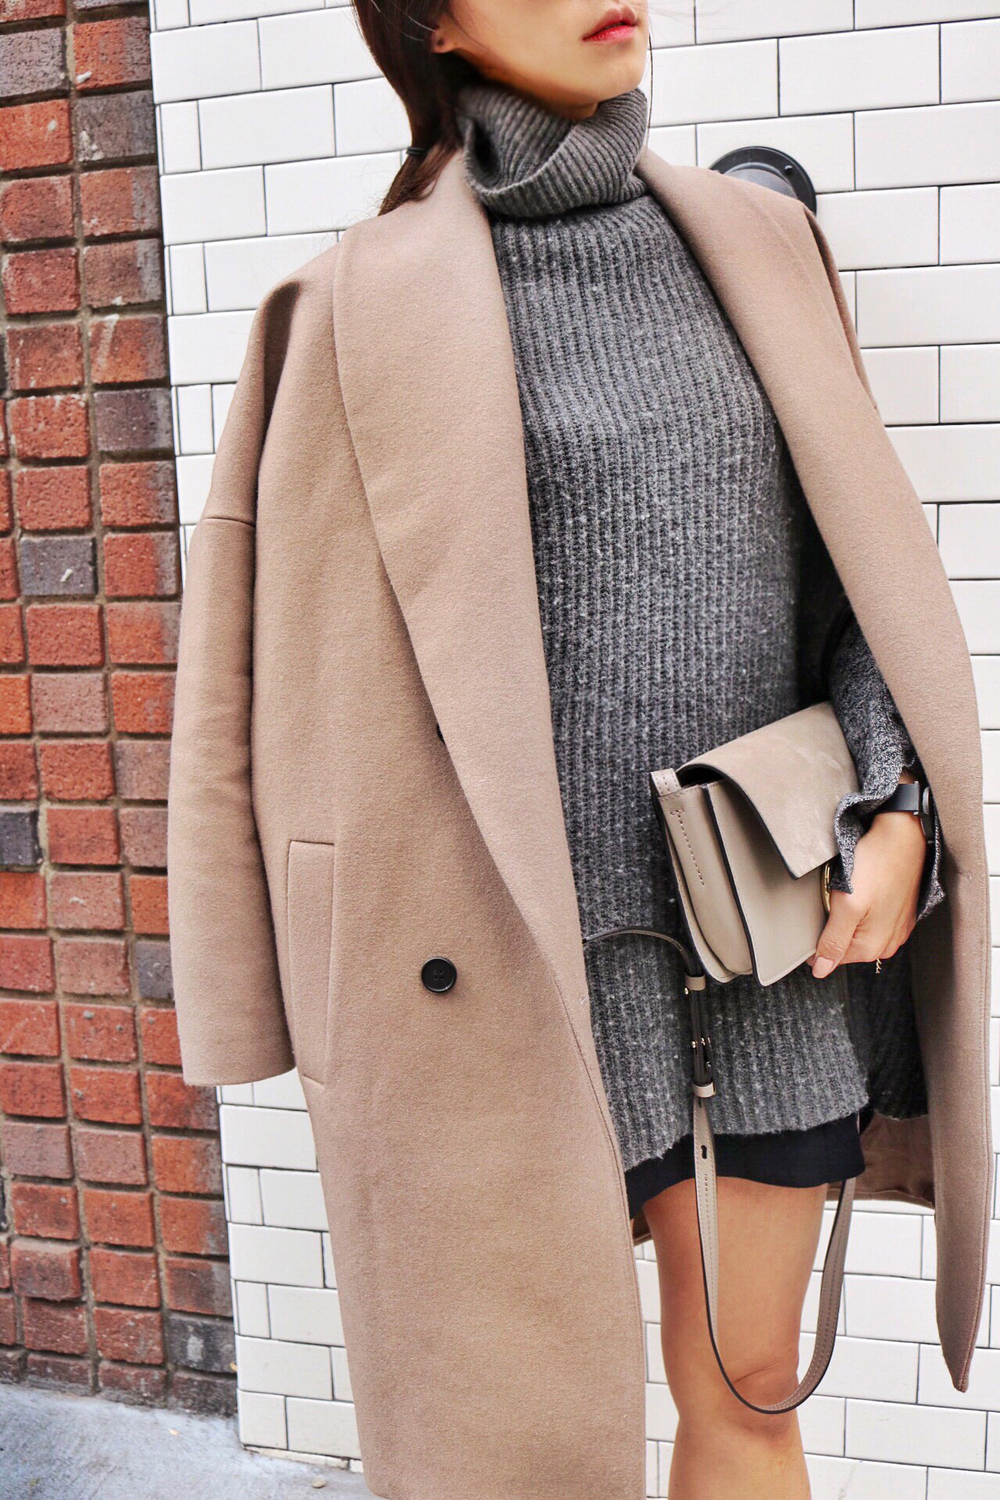 All Saints Coat, Michael Kors Sweater Poncho, Urbanoutfitters Skirt, Chloé Bag